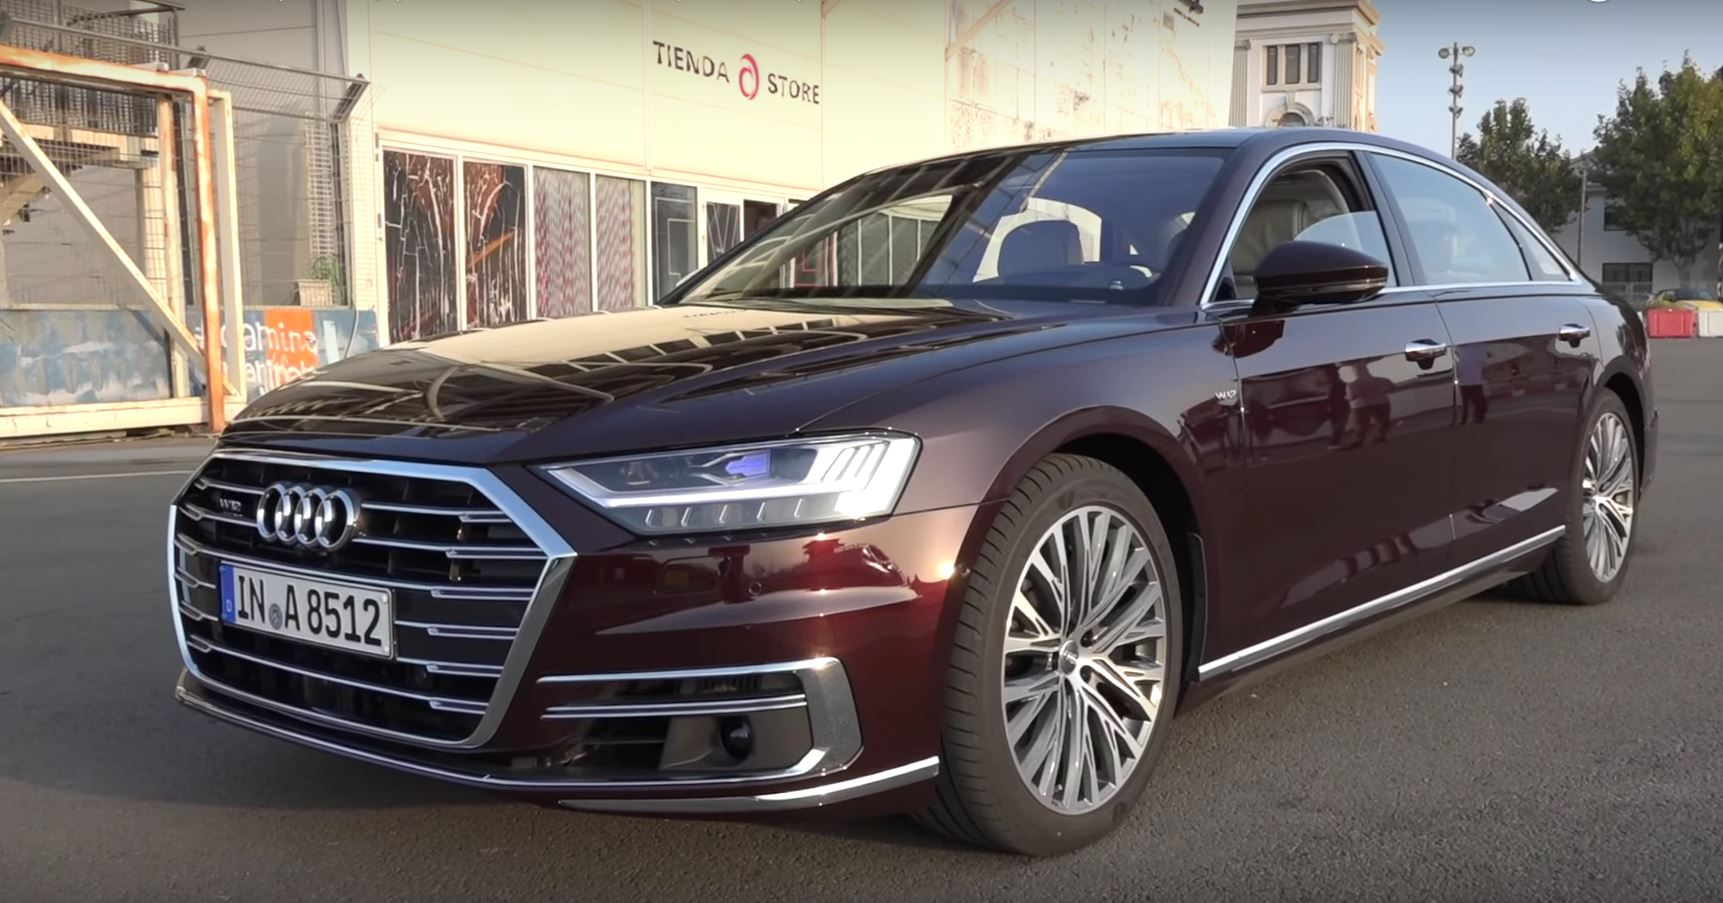 2018 audi a8 w12 has 585 hp but it doesnt sound good autoevolution 96 photos 2018 audi a8 sciox Image collections